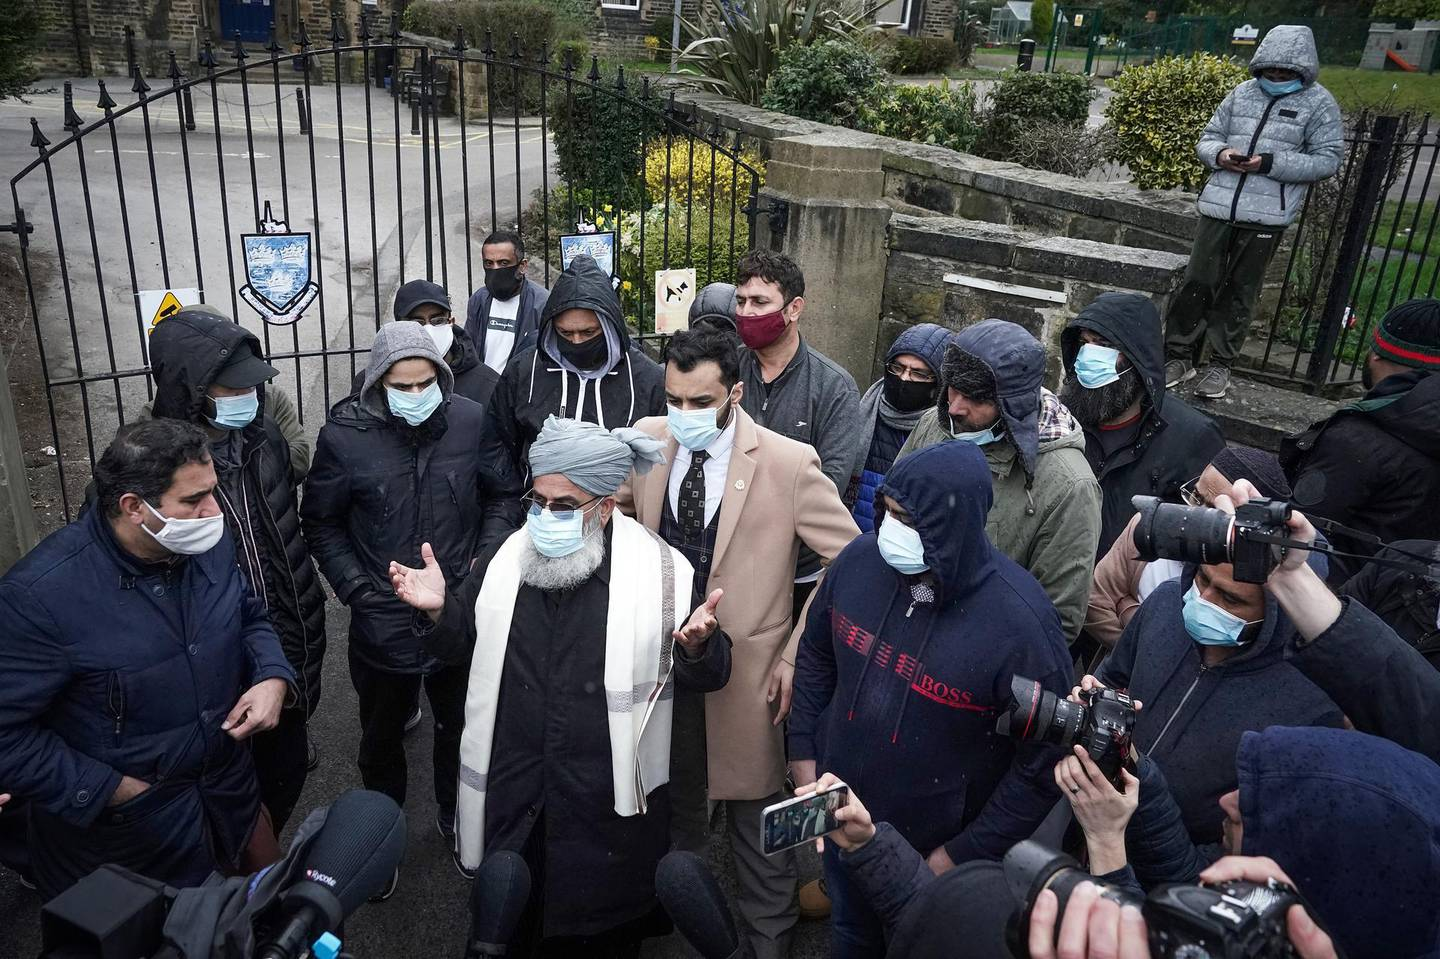 BATLEY, ENGLAND - MARCH 26: People gather outside the gates of Batley Grammar School, after a teacher was suspended for showing an image of the Prophet Muhammad in class, on March 26, 2021 in Batley, England. A few dozen people, including parents of students, gathered outside the school gates yesterday morning to protest the teacher's actions. The school issued an apology yesterday and said the teacher had been suspended. (Photo by Christopher Furlong/Getty Images)